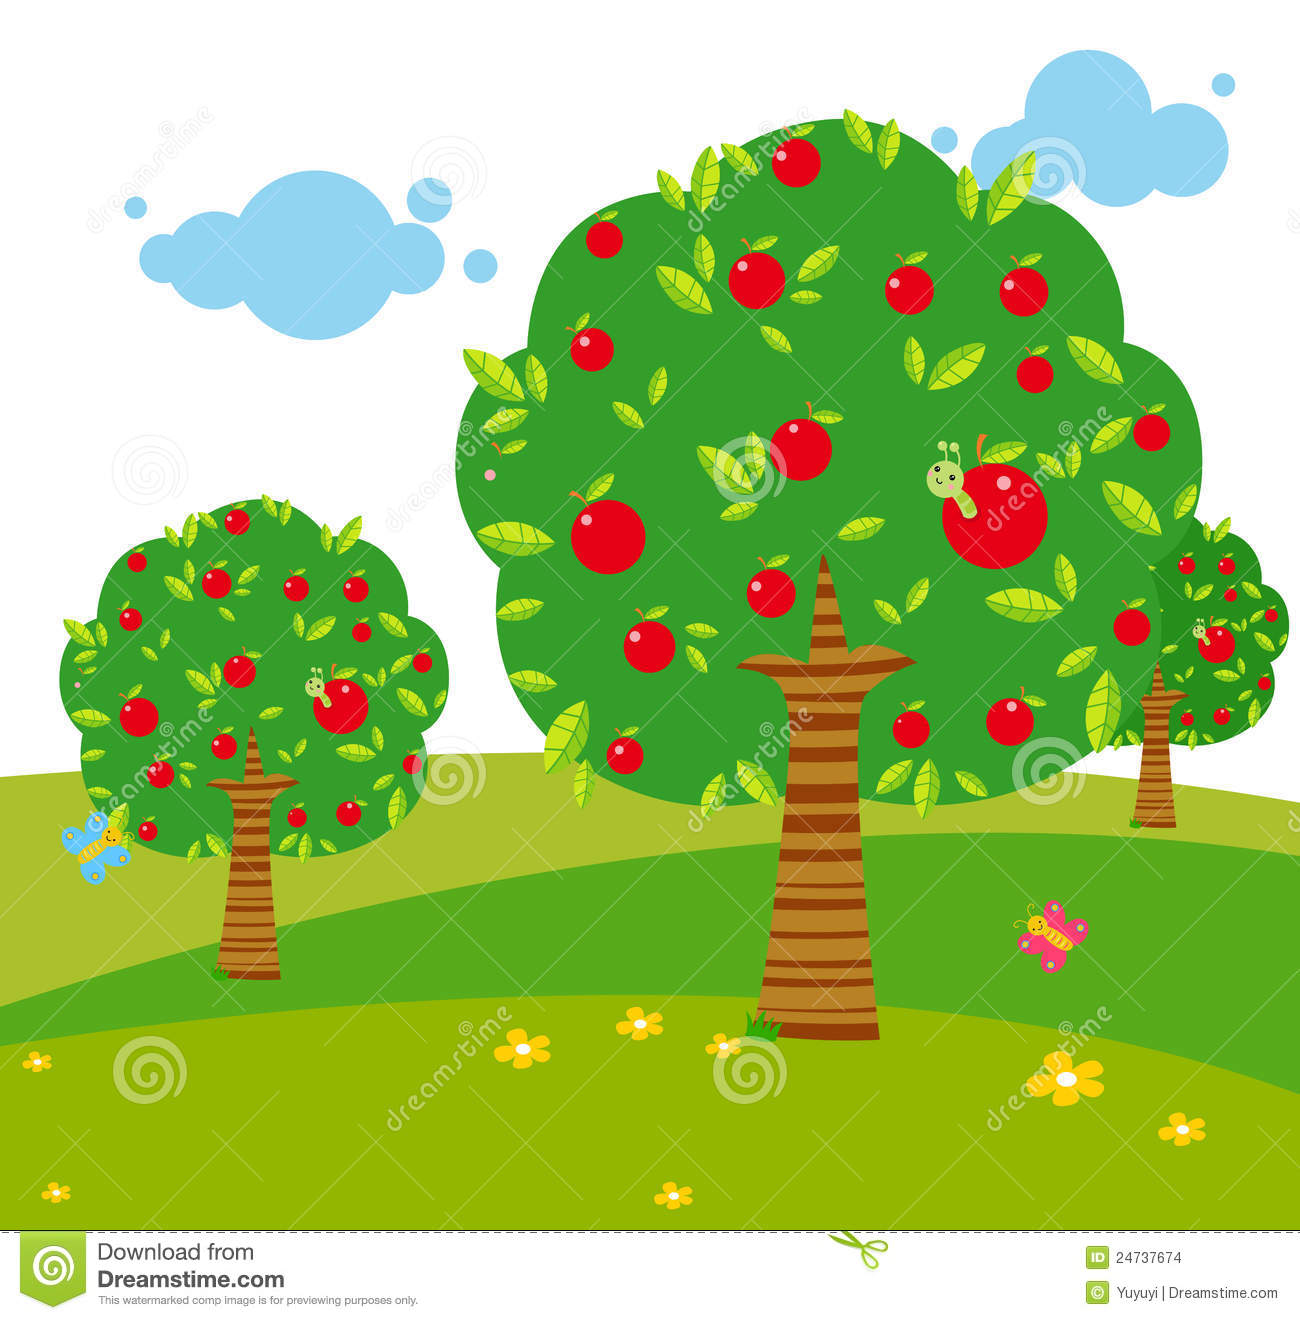 Apple Tree Stock Images - Image: 24737674